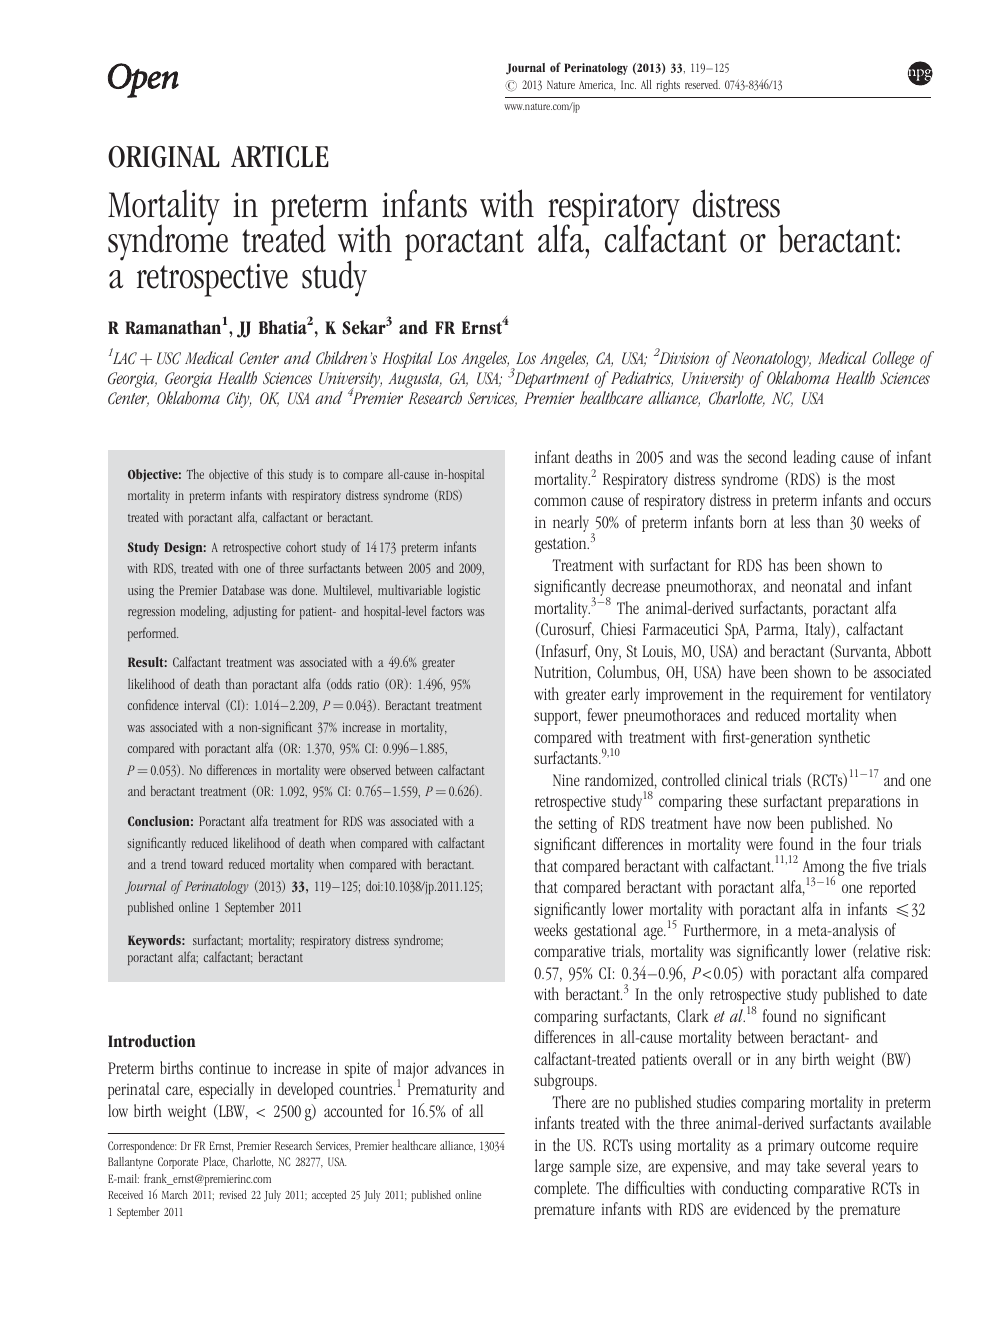 Mortality in preterm infants with respiratory distress syndrome